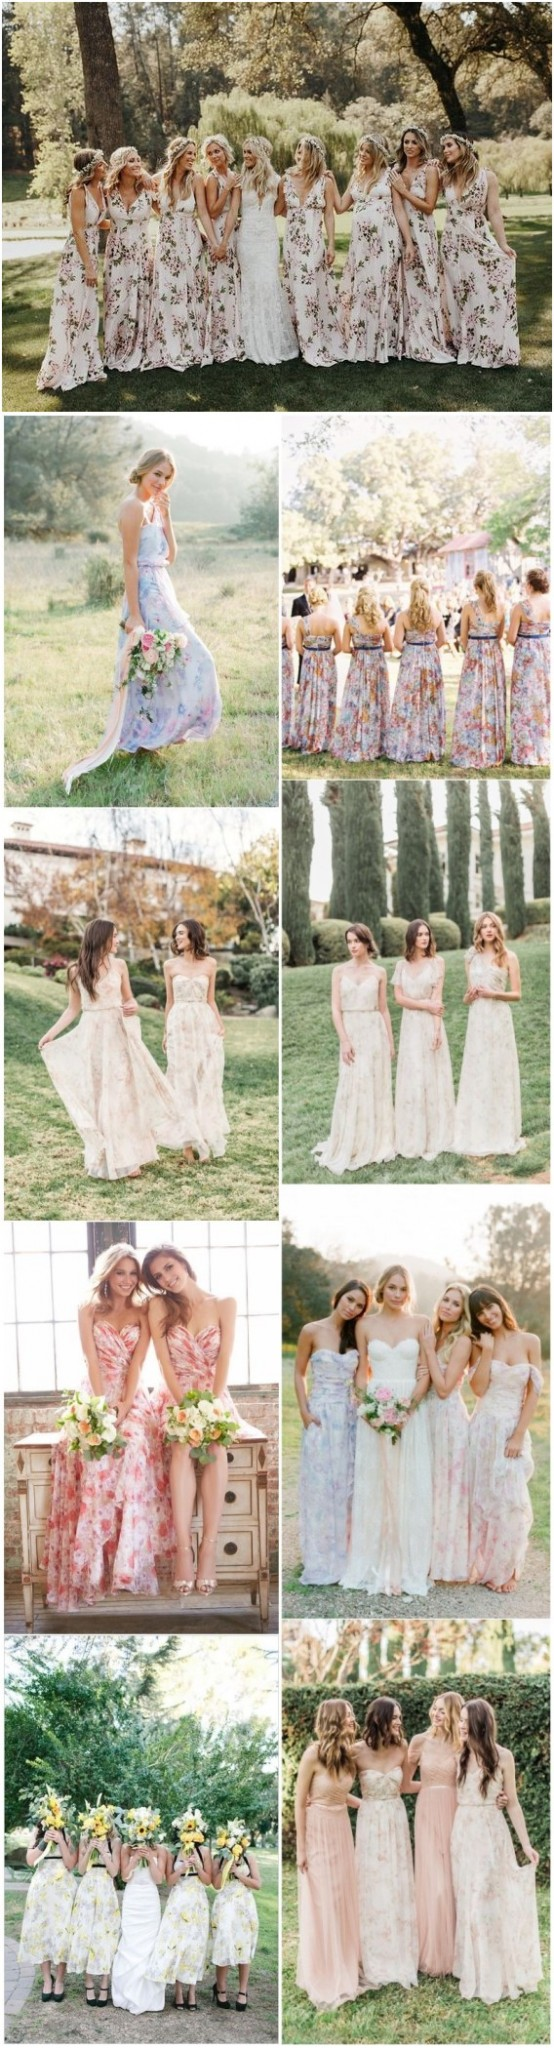 Floral Print Bridesmaid Dresses for Spring and Summer Weddings